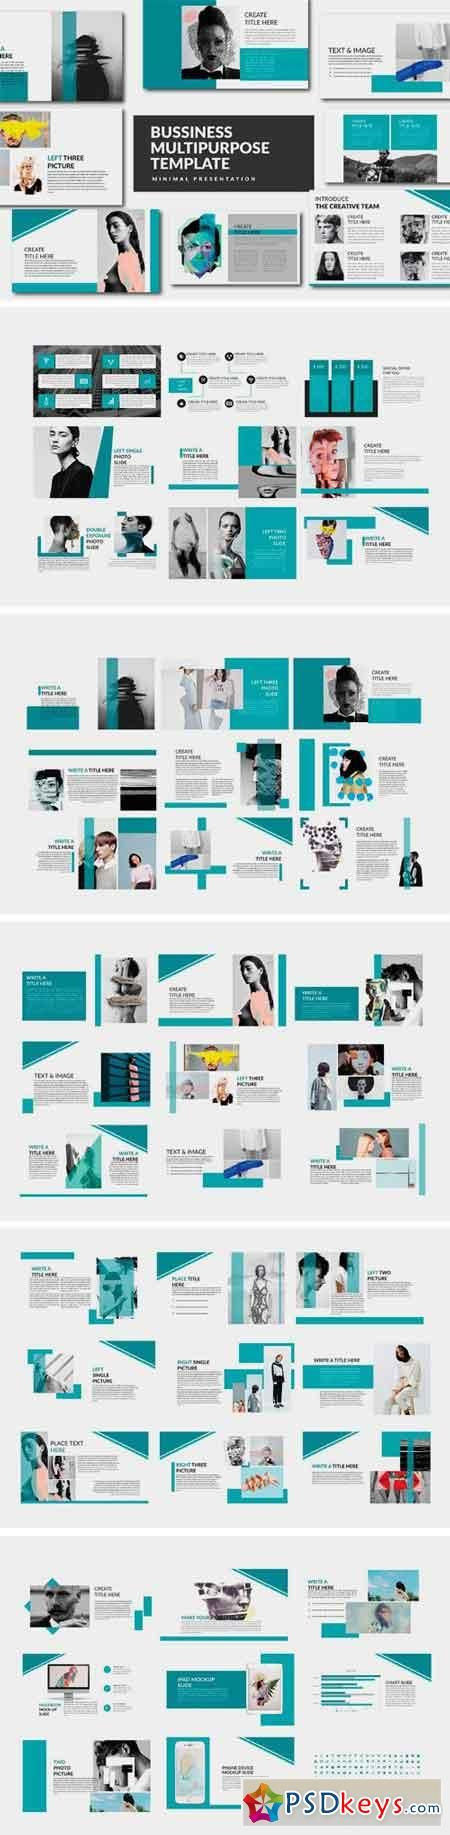 best 25+ professional powerpoint templates ideas on pinterest, Presentation templates